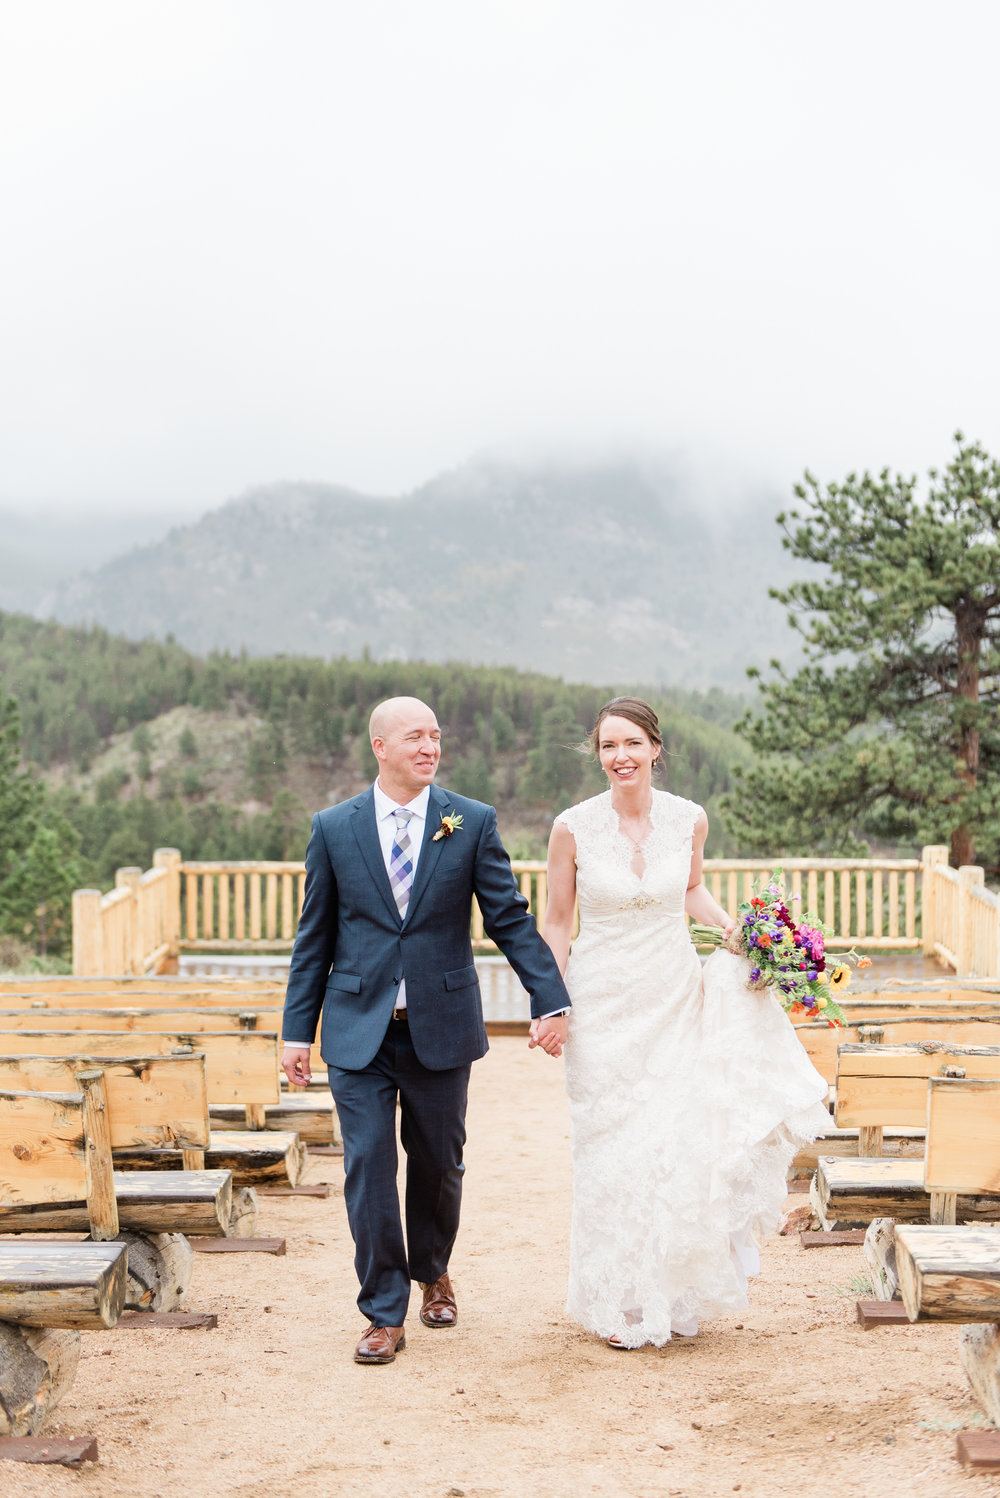 AshleighMillerPhotography-Weddings-Emily-Joe-EstesPark-Colorao-723.jpg